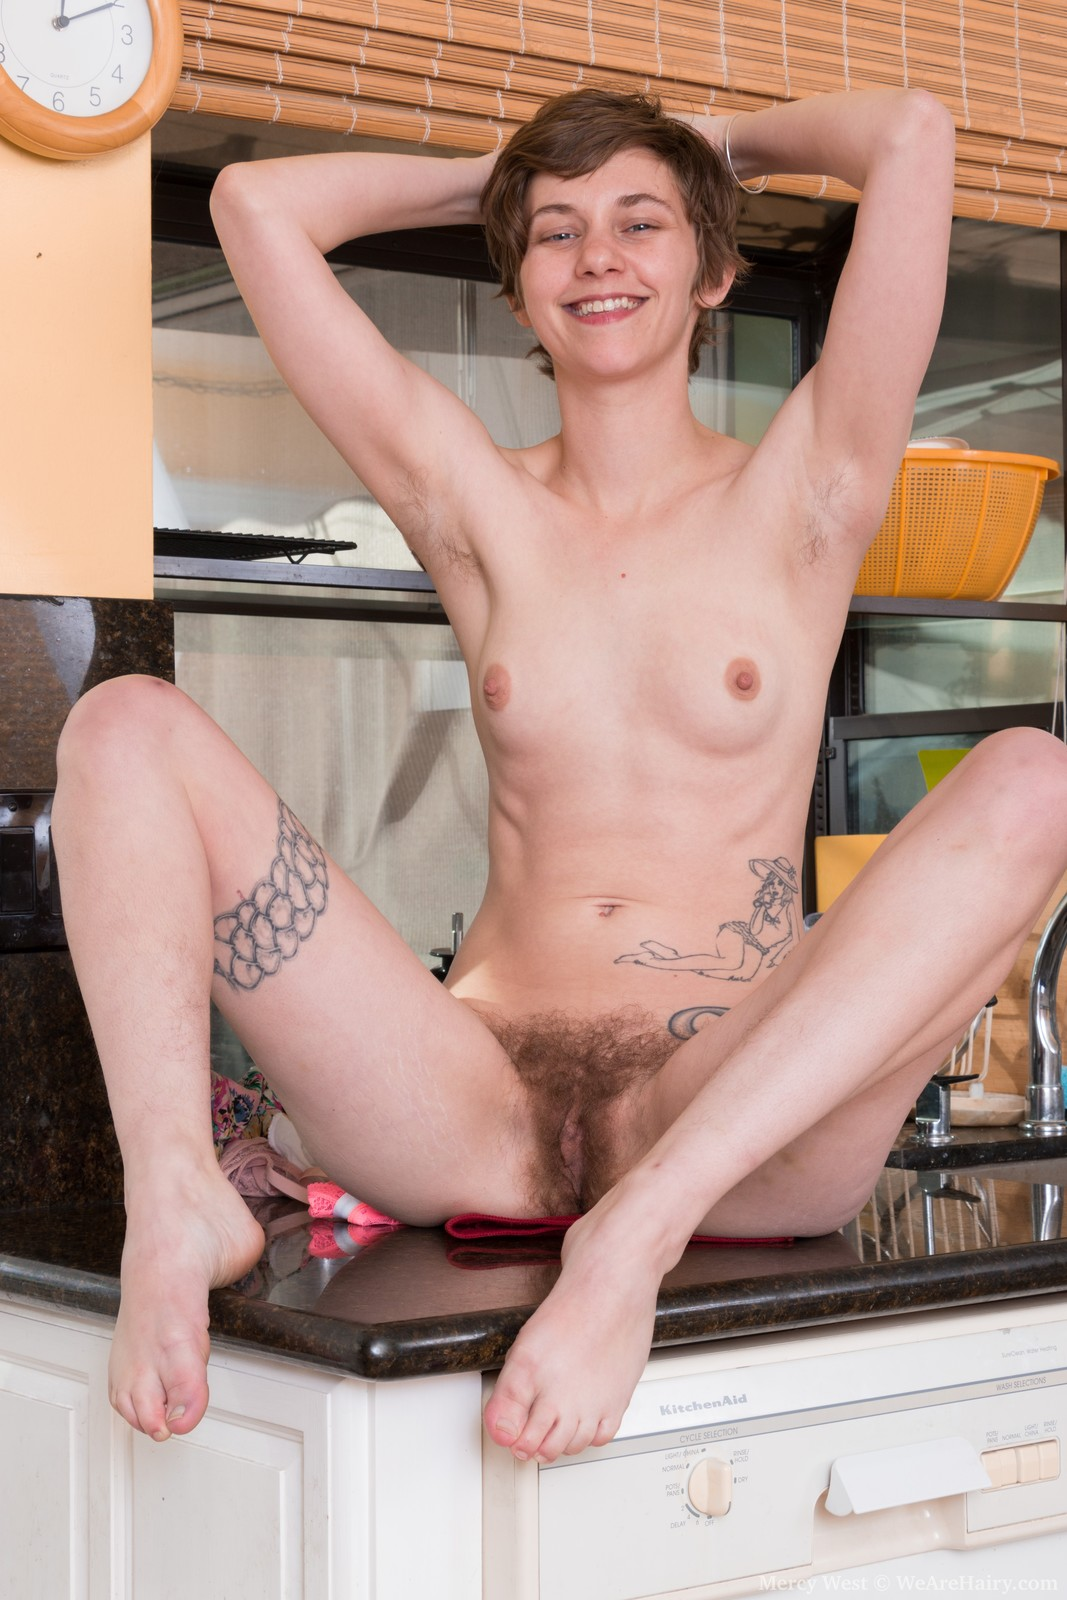 mercy-west-is-enjoying-herself-in-her-kitchen-and-showing-off-her-body-with-stockings.-she-strips-naked-and-has-hairy-pits-and-a-hairy-pussy-to-enjoy.-she-teases-us-with-sexy-looks-and-pleasure.12.jpg